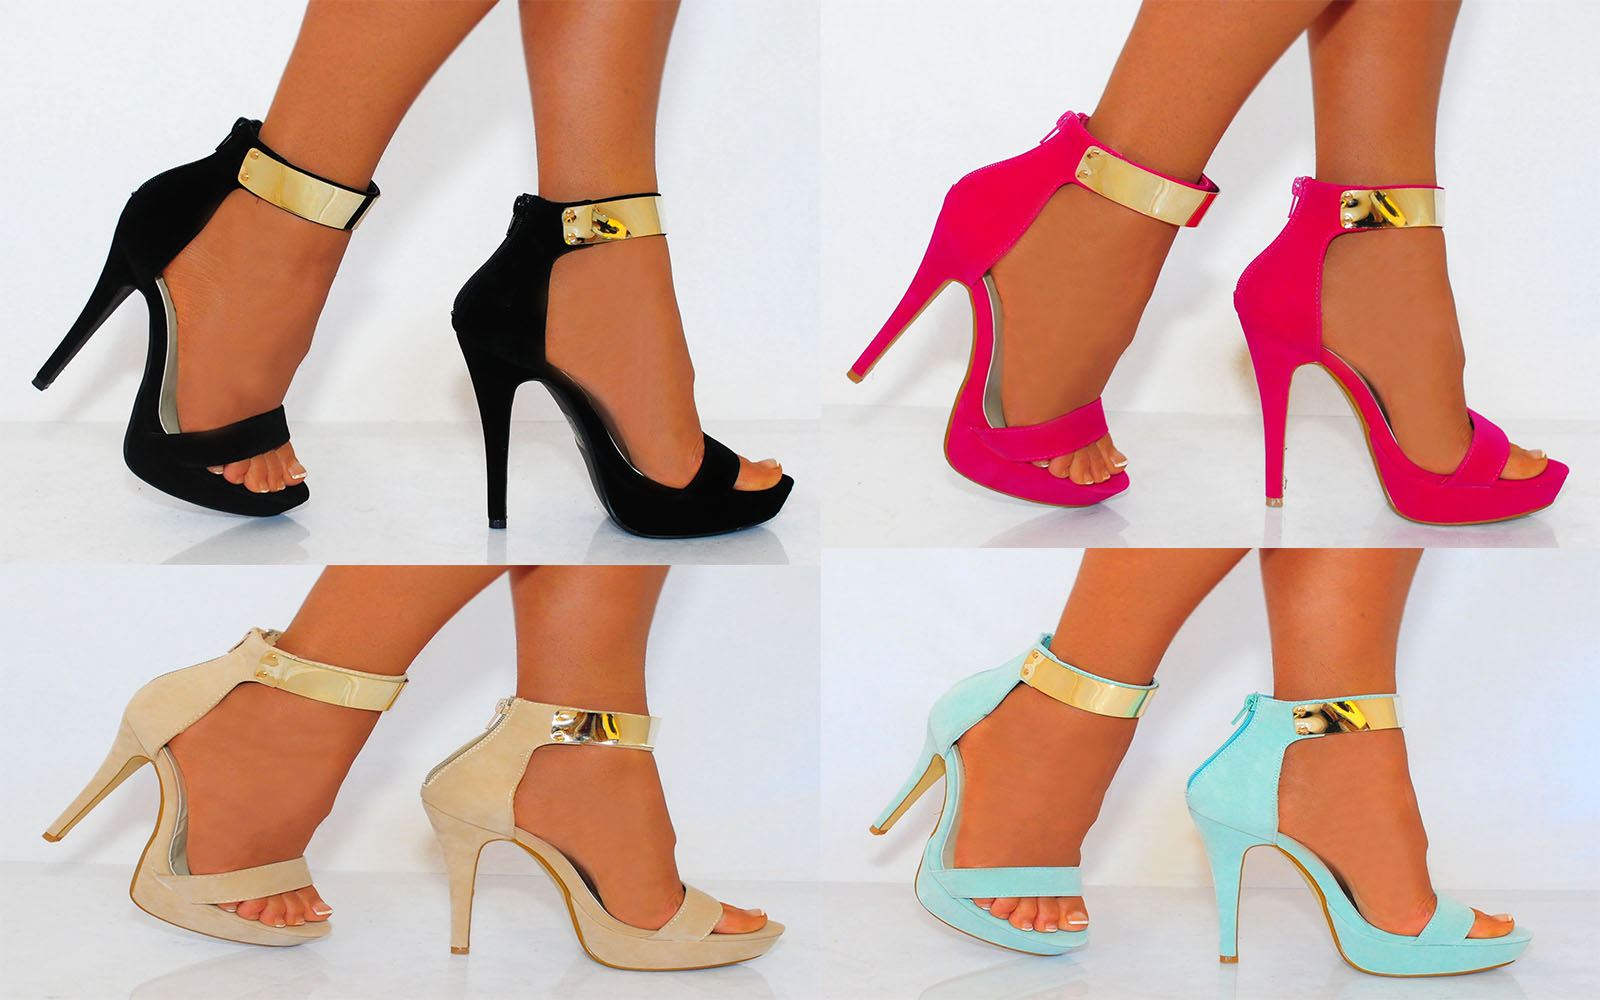 METAL ANKLE CUFF STRAP STRAPPY SANDALS PEEP TOES STILETTO HIGH ...